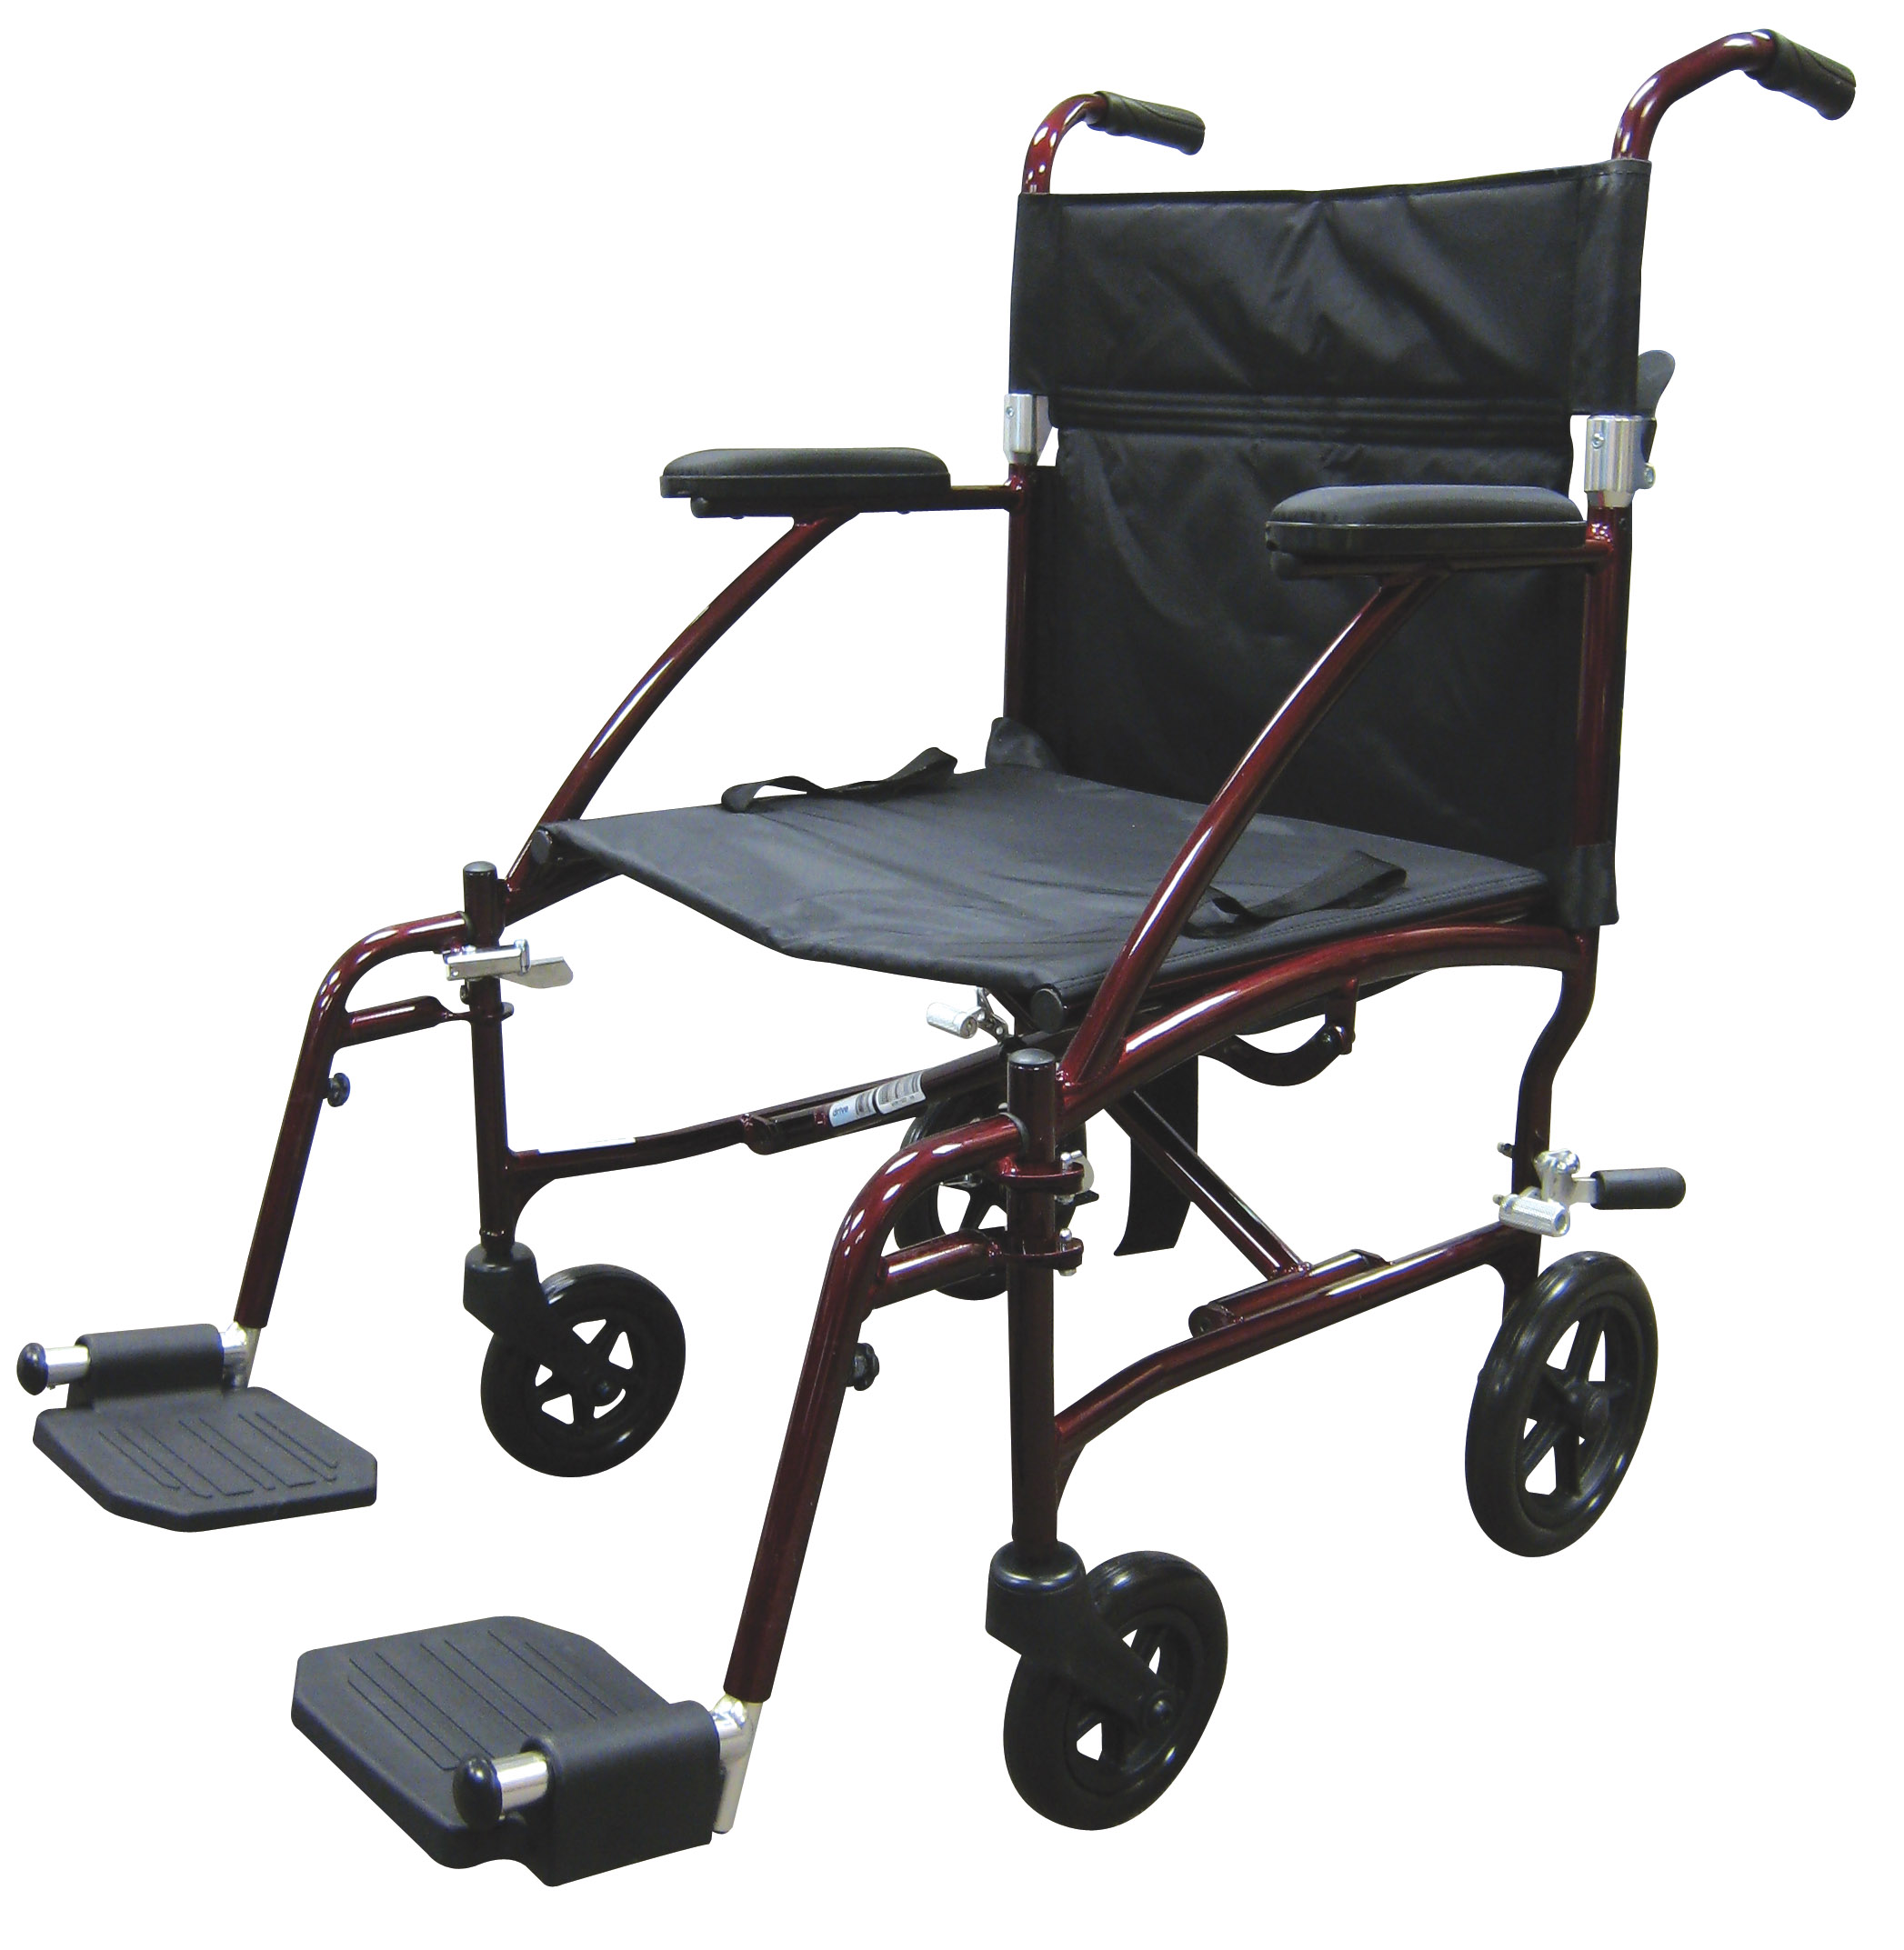 fly lite ultra lightweight transport wheelchair ideal. Black Bedroom Furniture Sets. Home Design Ideas